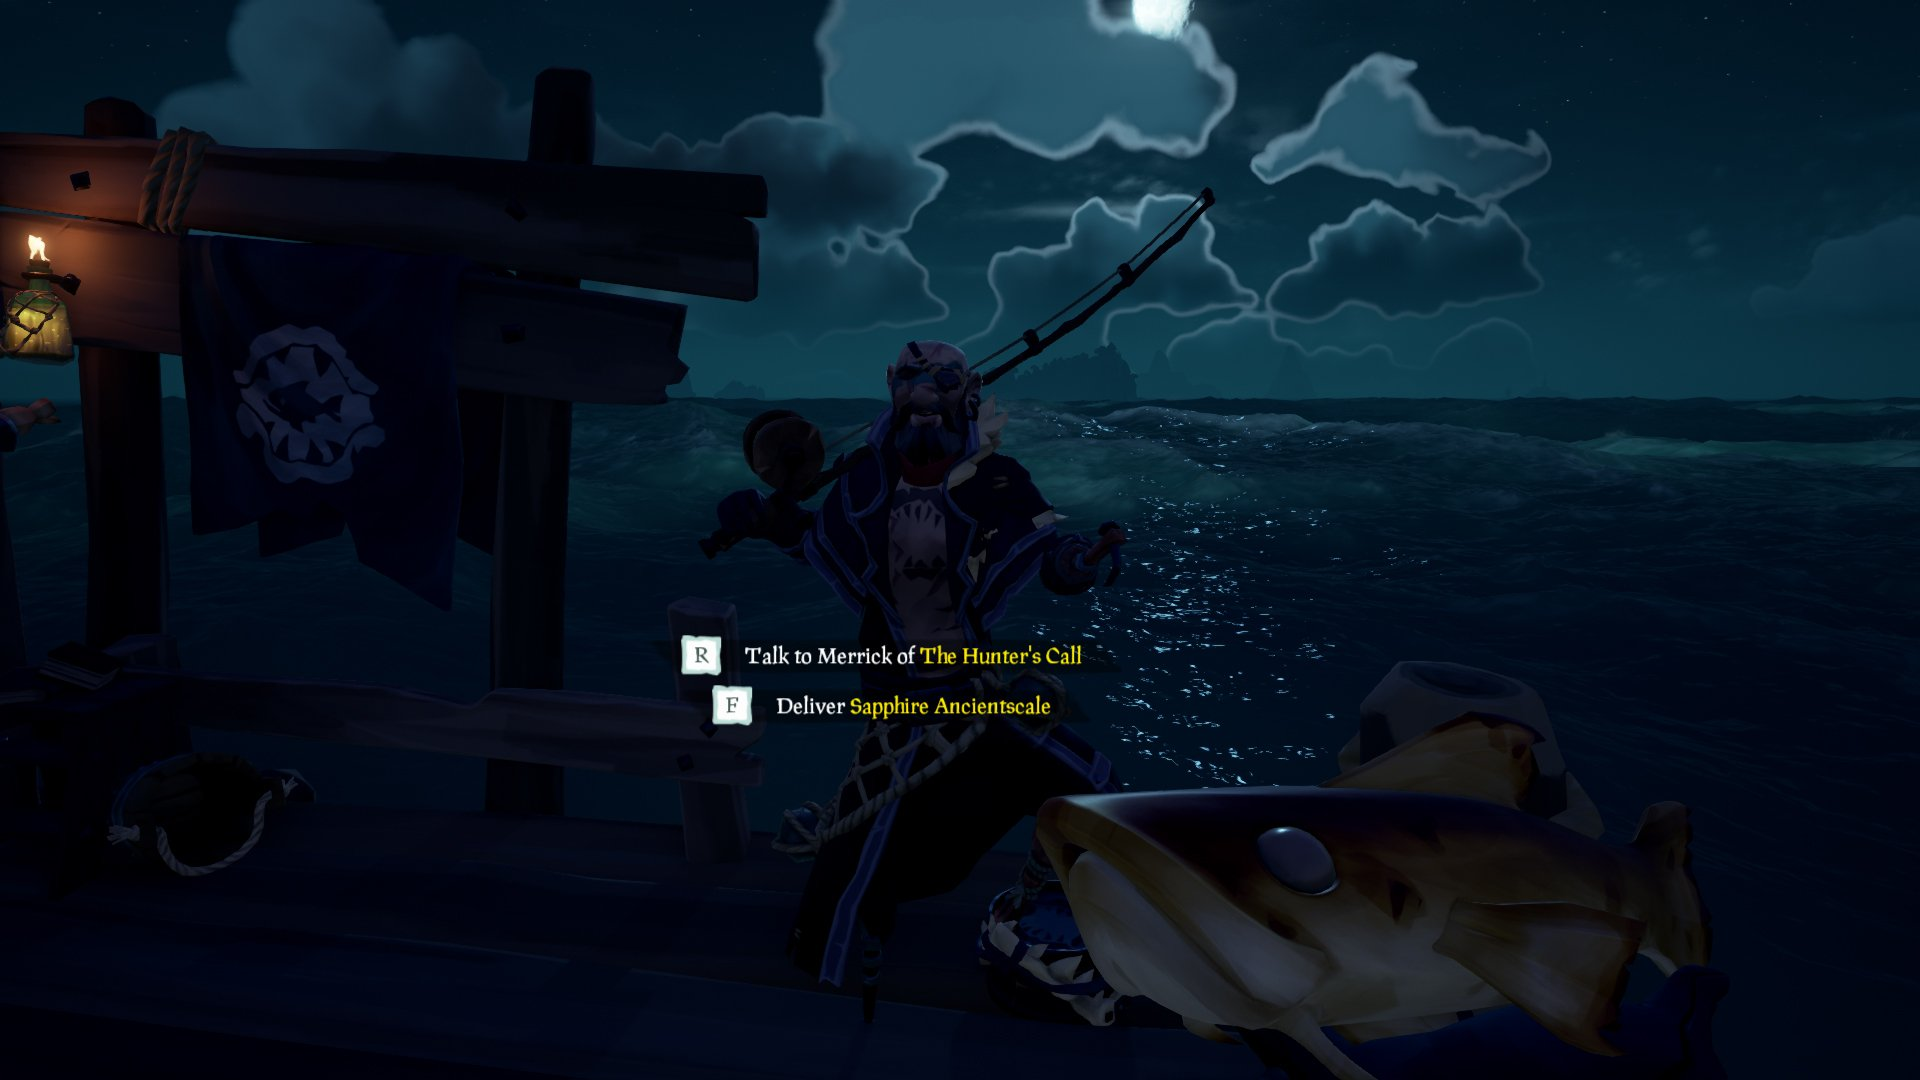 https://d1lss44hh2trtw.cloudfront.net/assets/editorial/2019/05/where-to-find-merrick-sea-of-thieves-anniversary-update.jpg